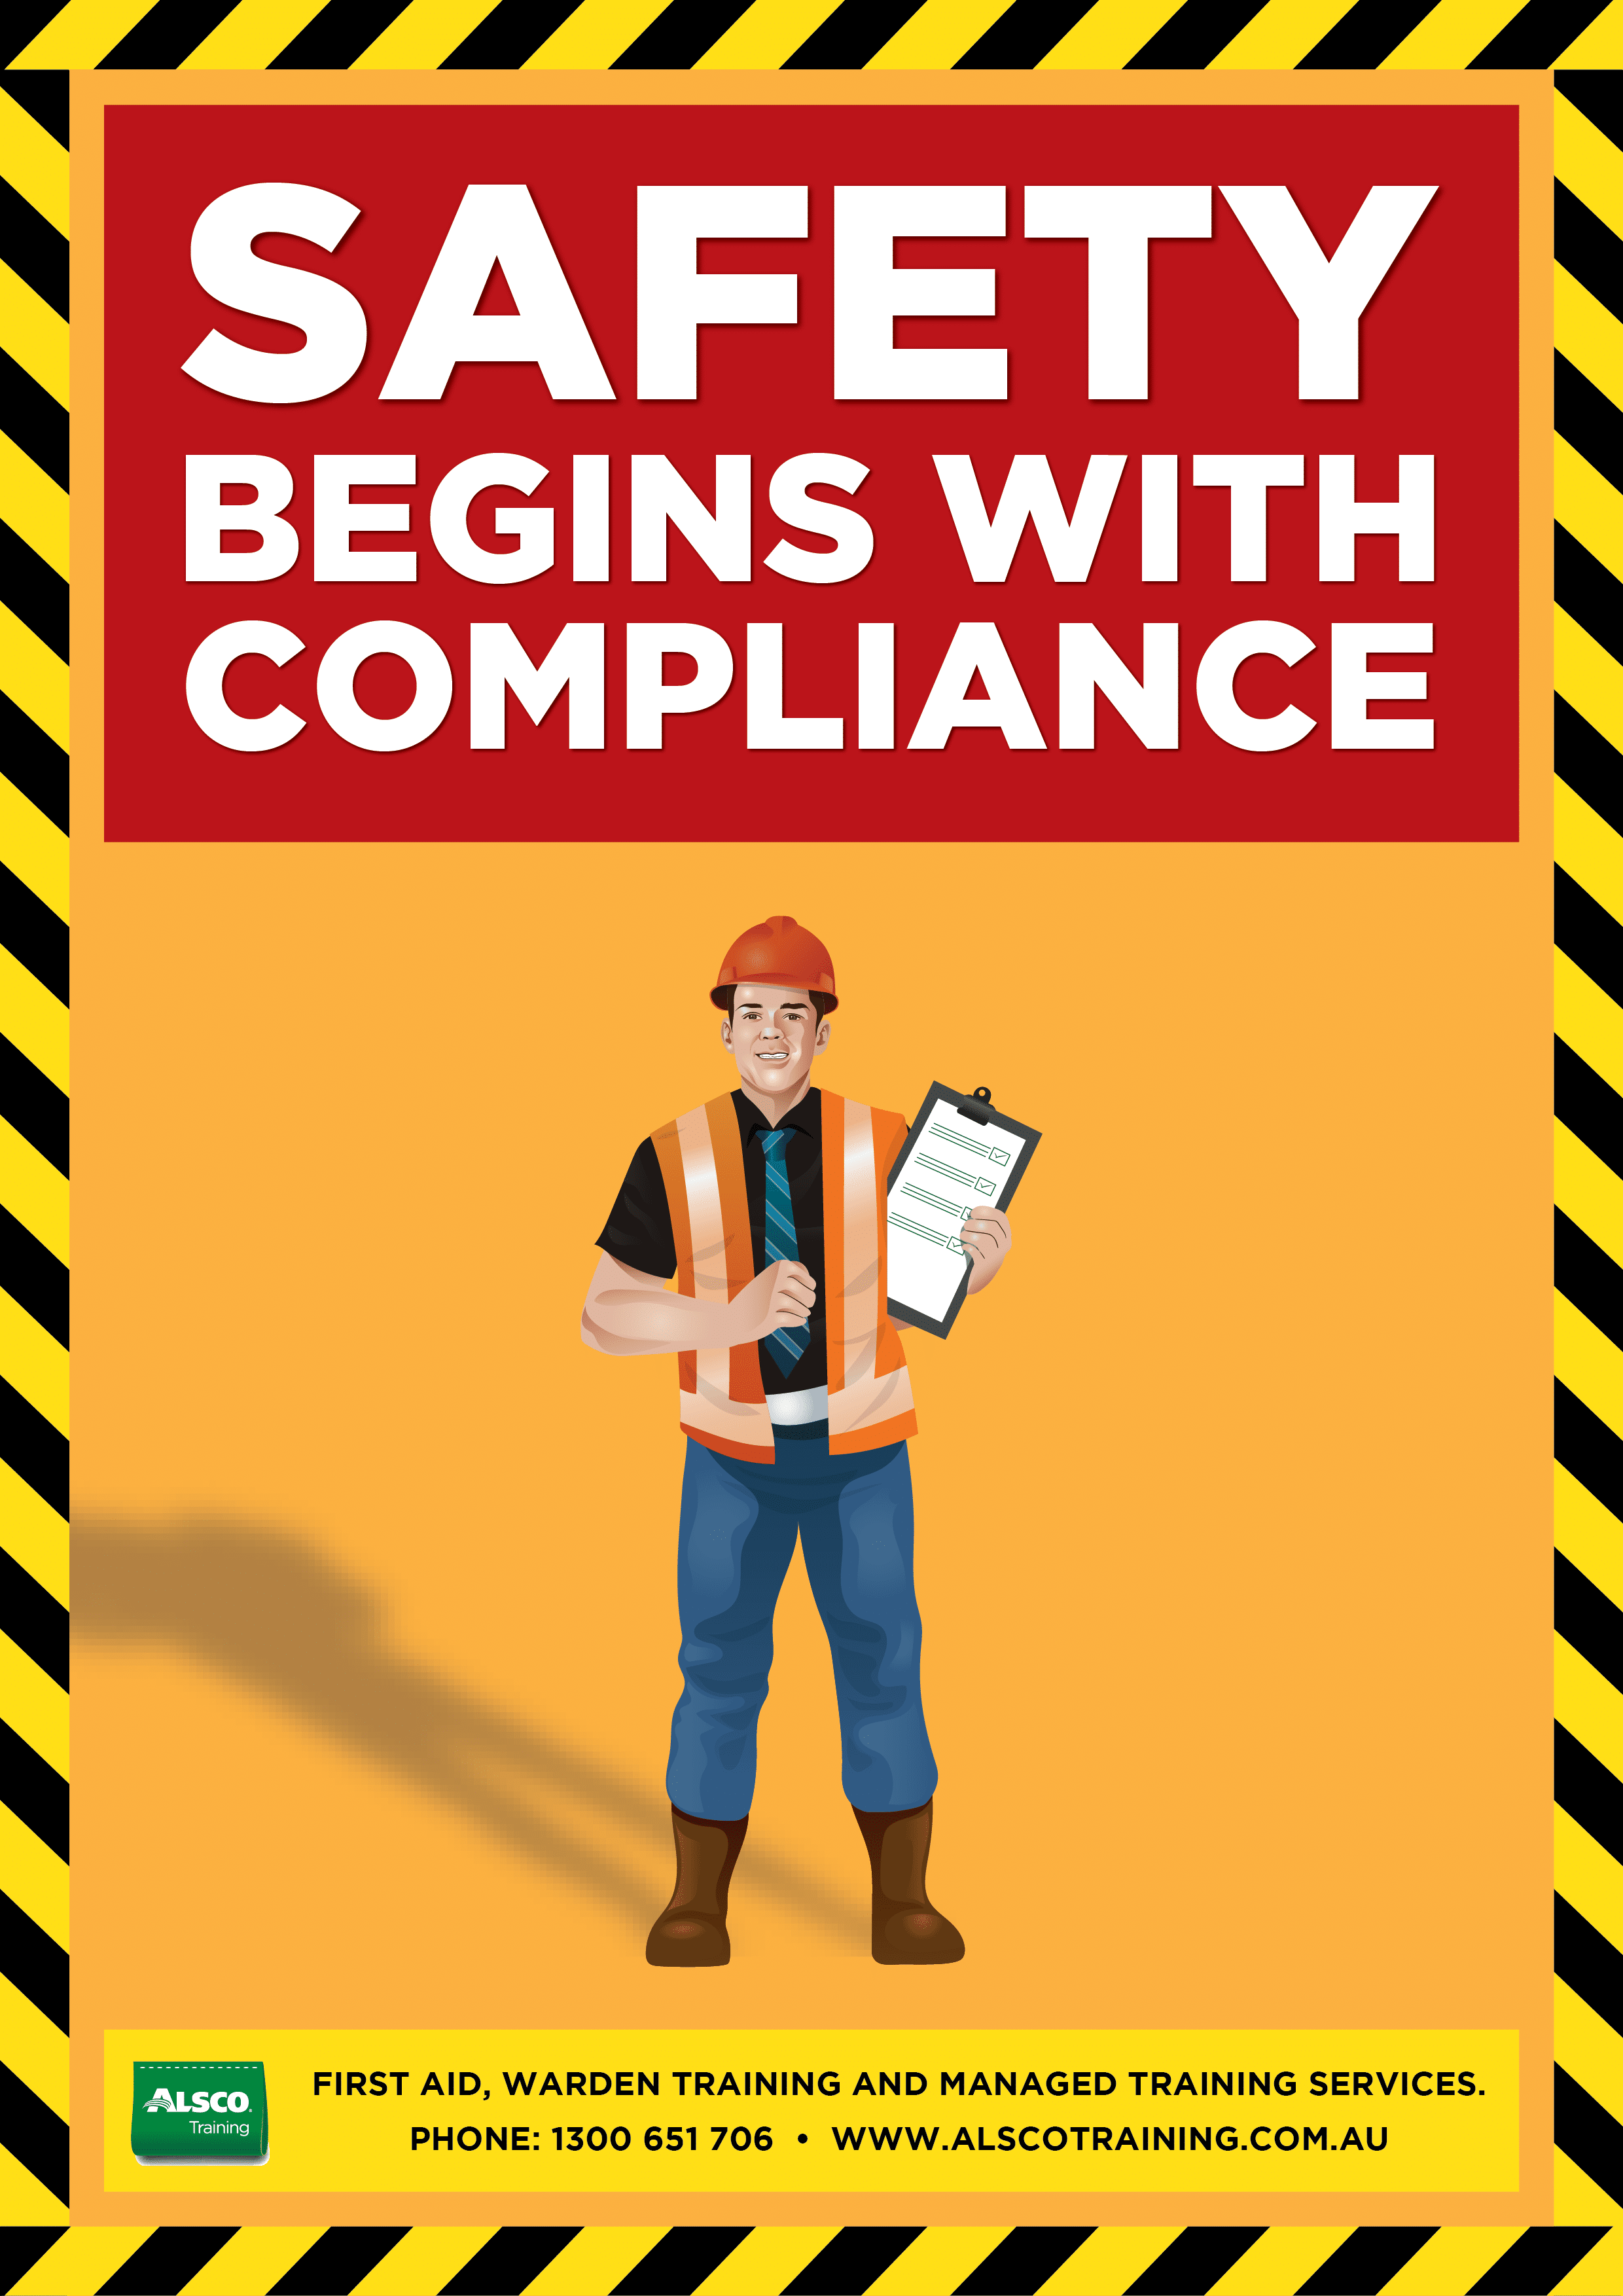 Related image Safety posters, Safety slogans, Health and